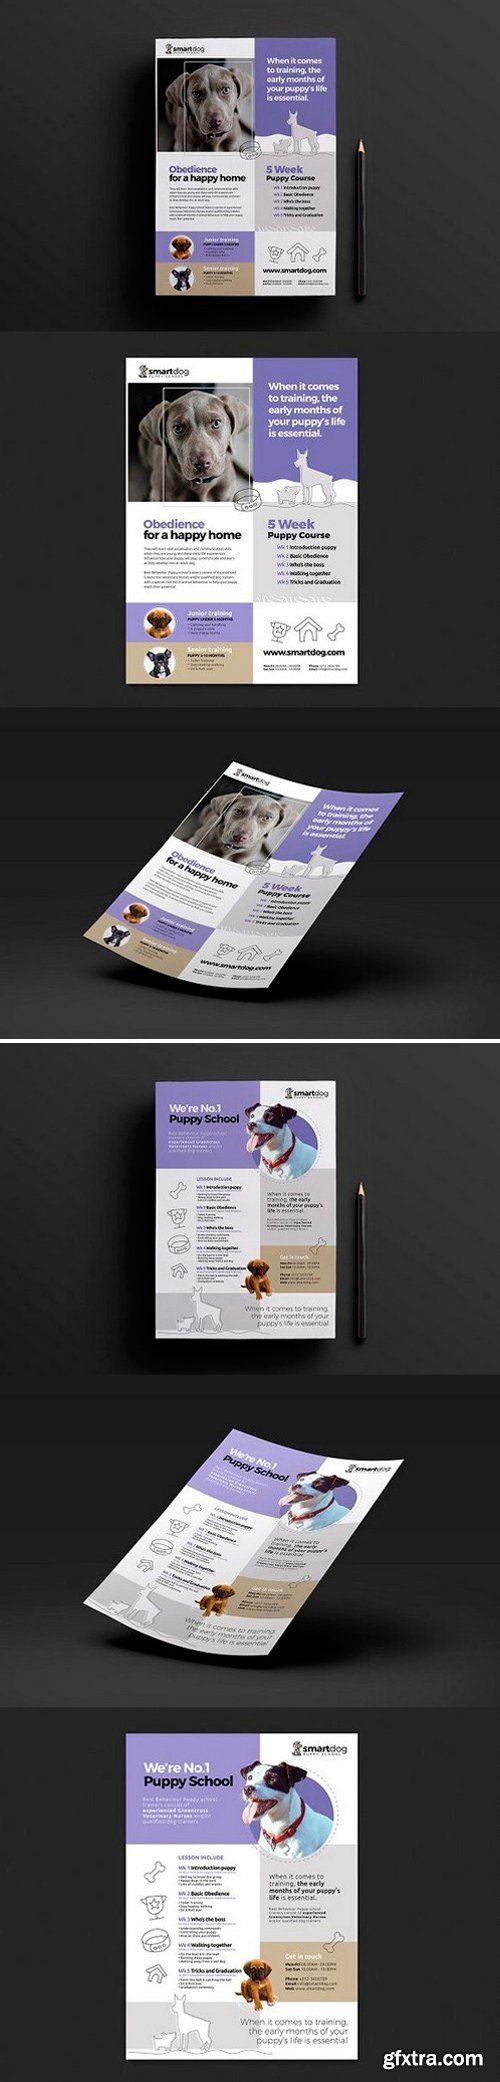 A4 Puppy School Poster Template Bundle